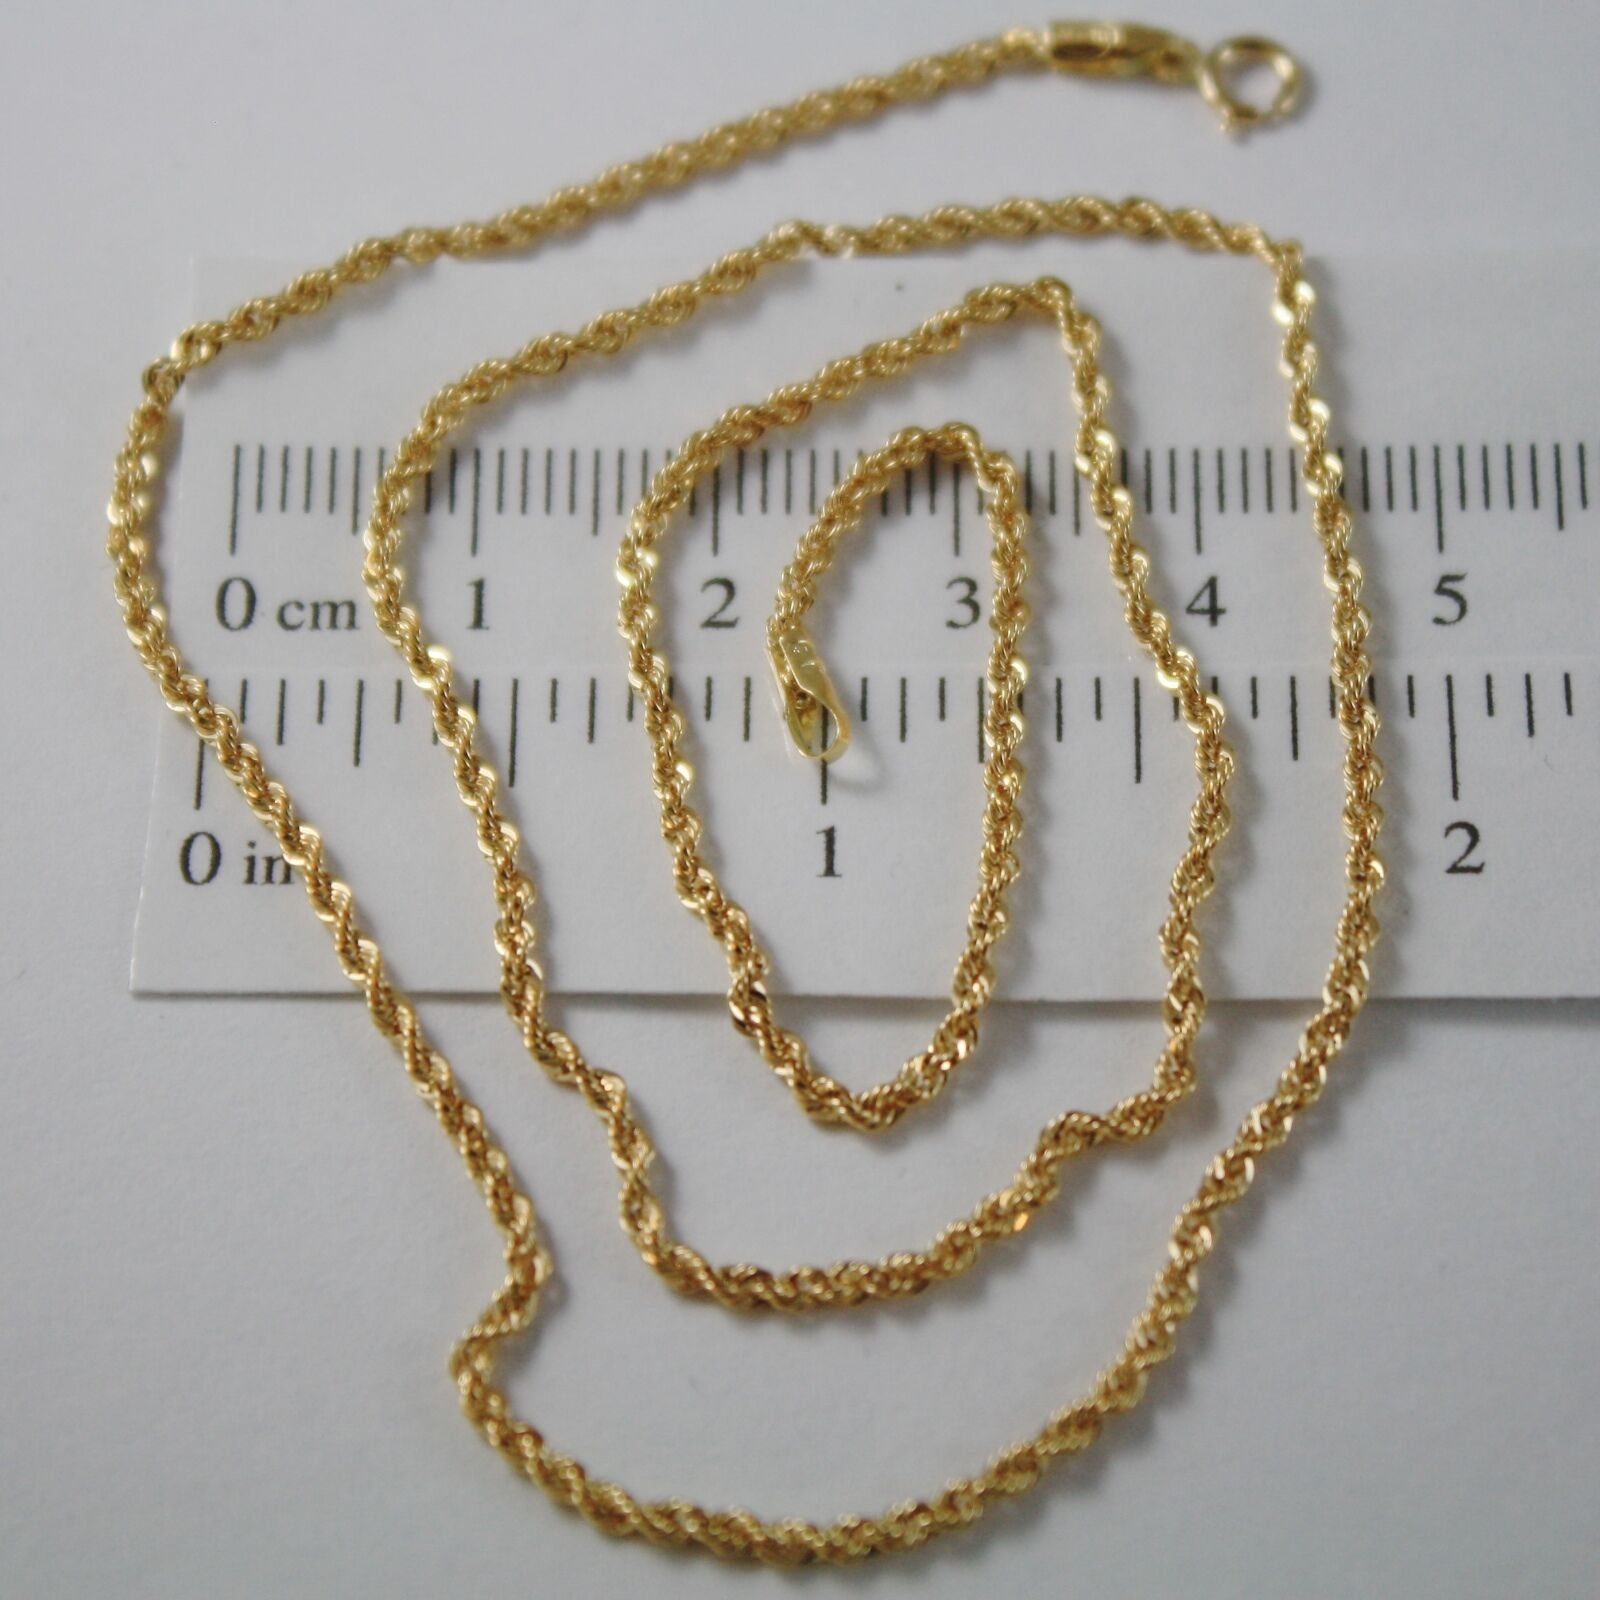 18K YELLOW GOLD CHAIN NECKLACE, BRAID ROPE LINK 17.71 INCHES MADE IN ITALY